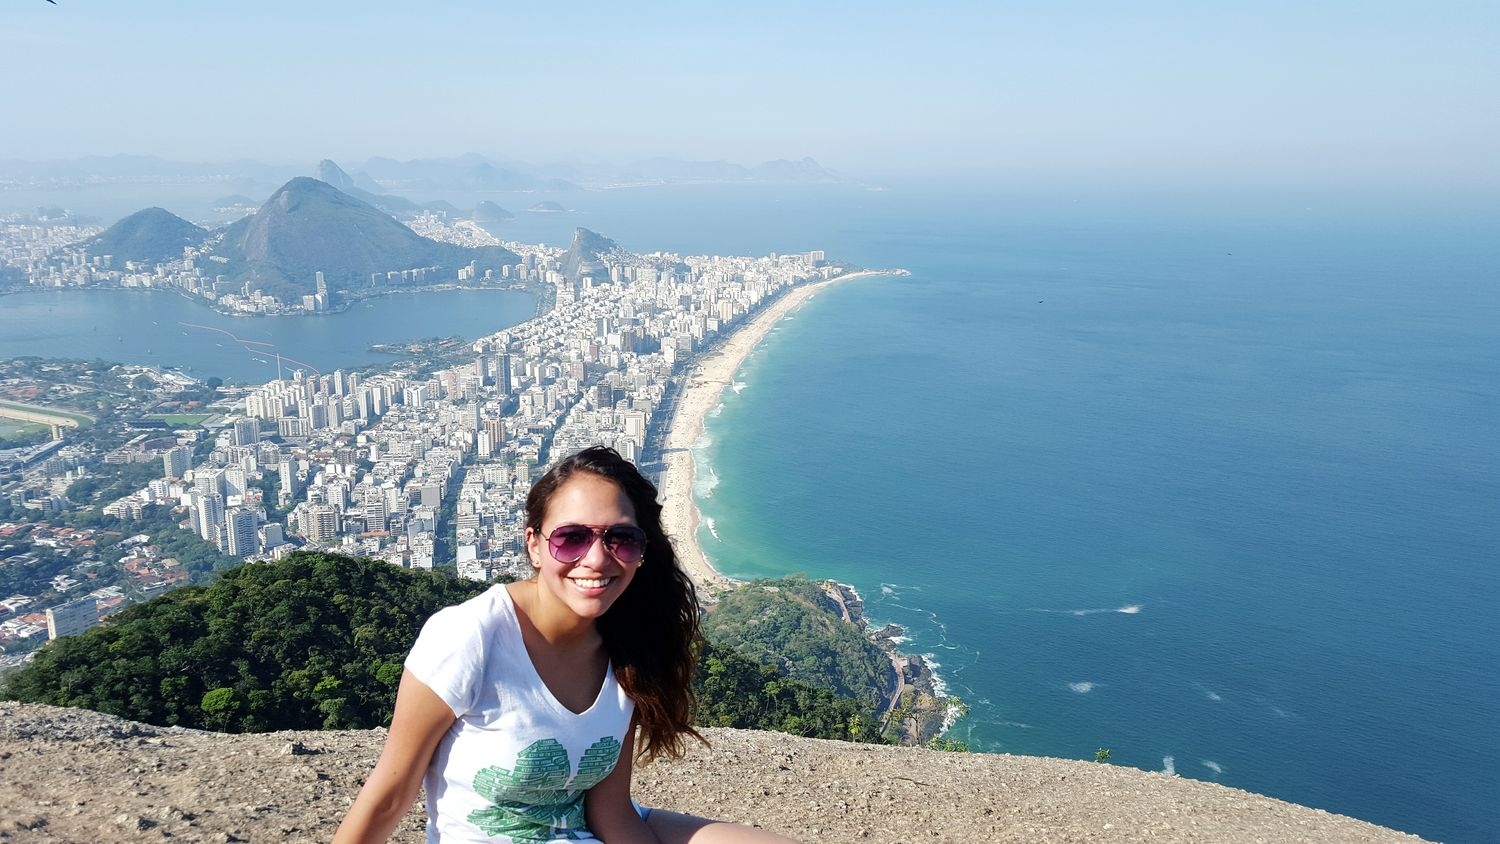 Riodejaneiro Amazing View Beauty In Nature Brazil Morrodoisirmãos